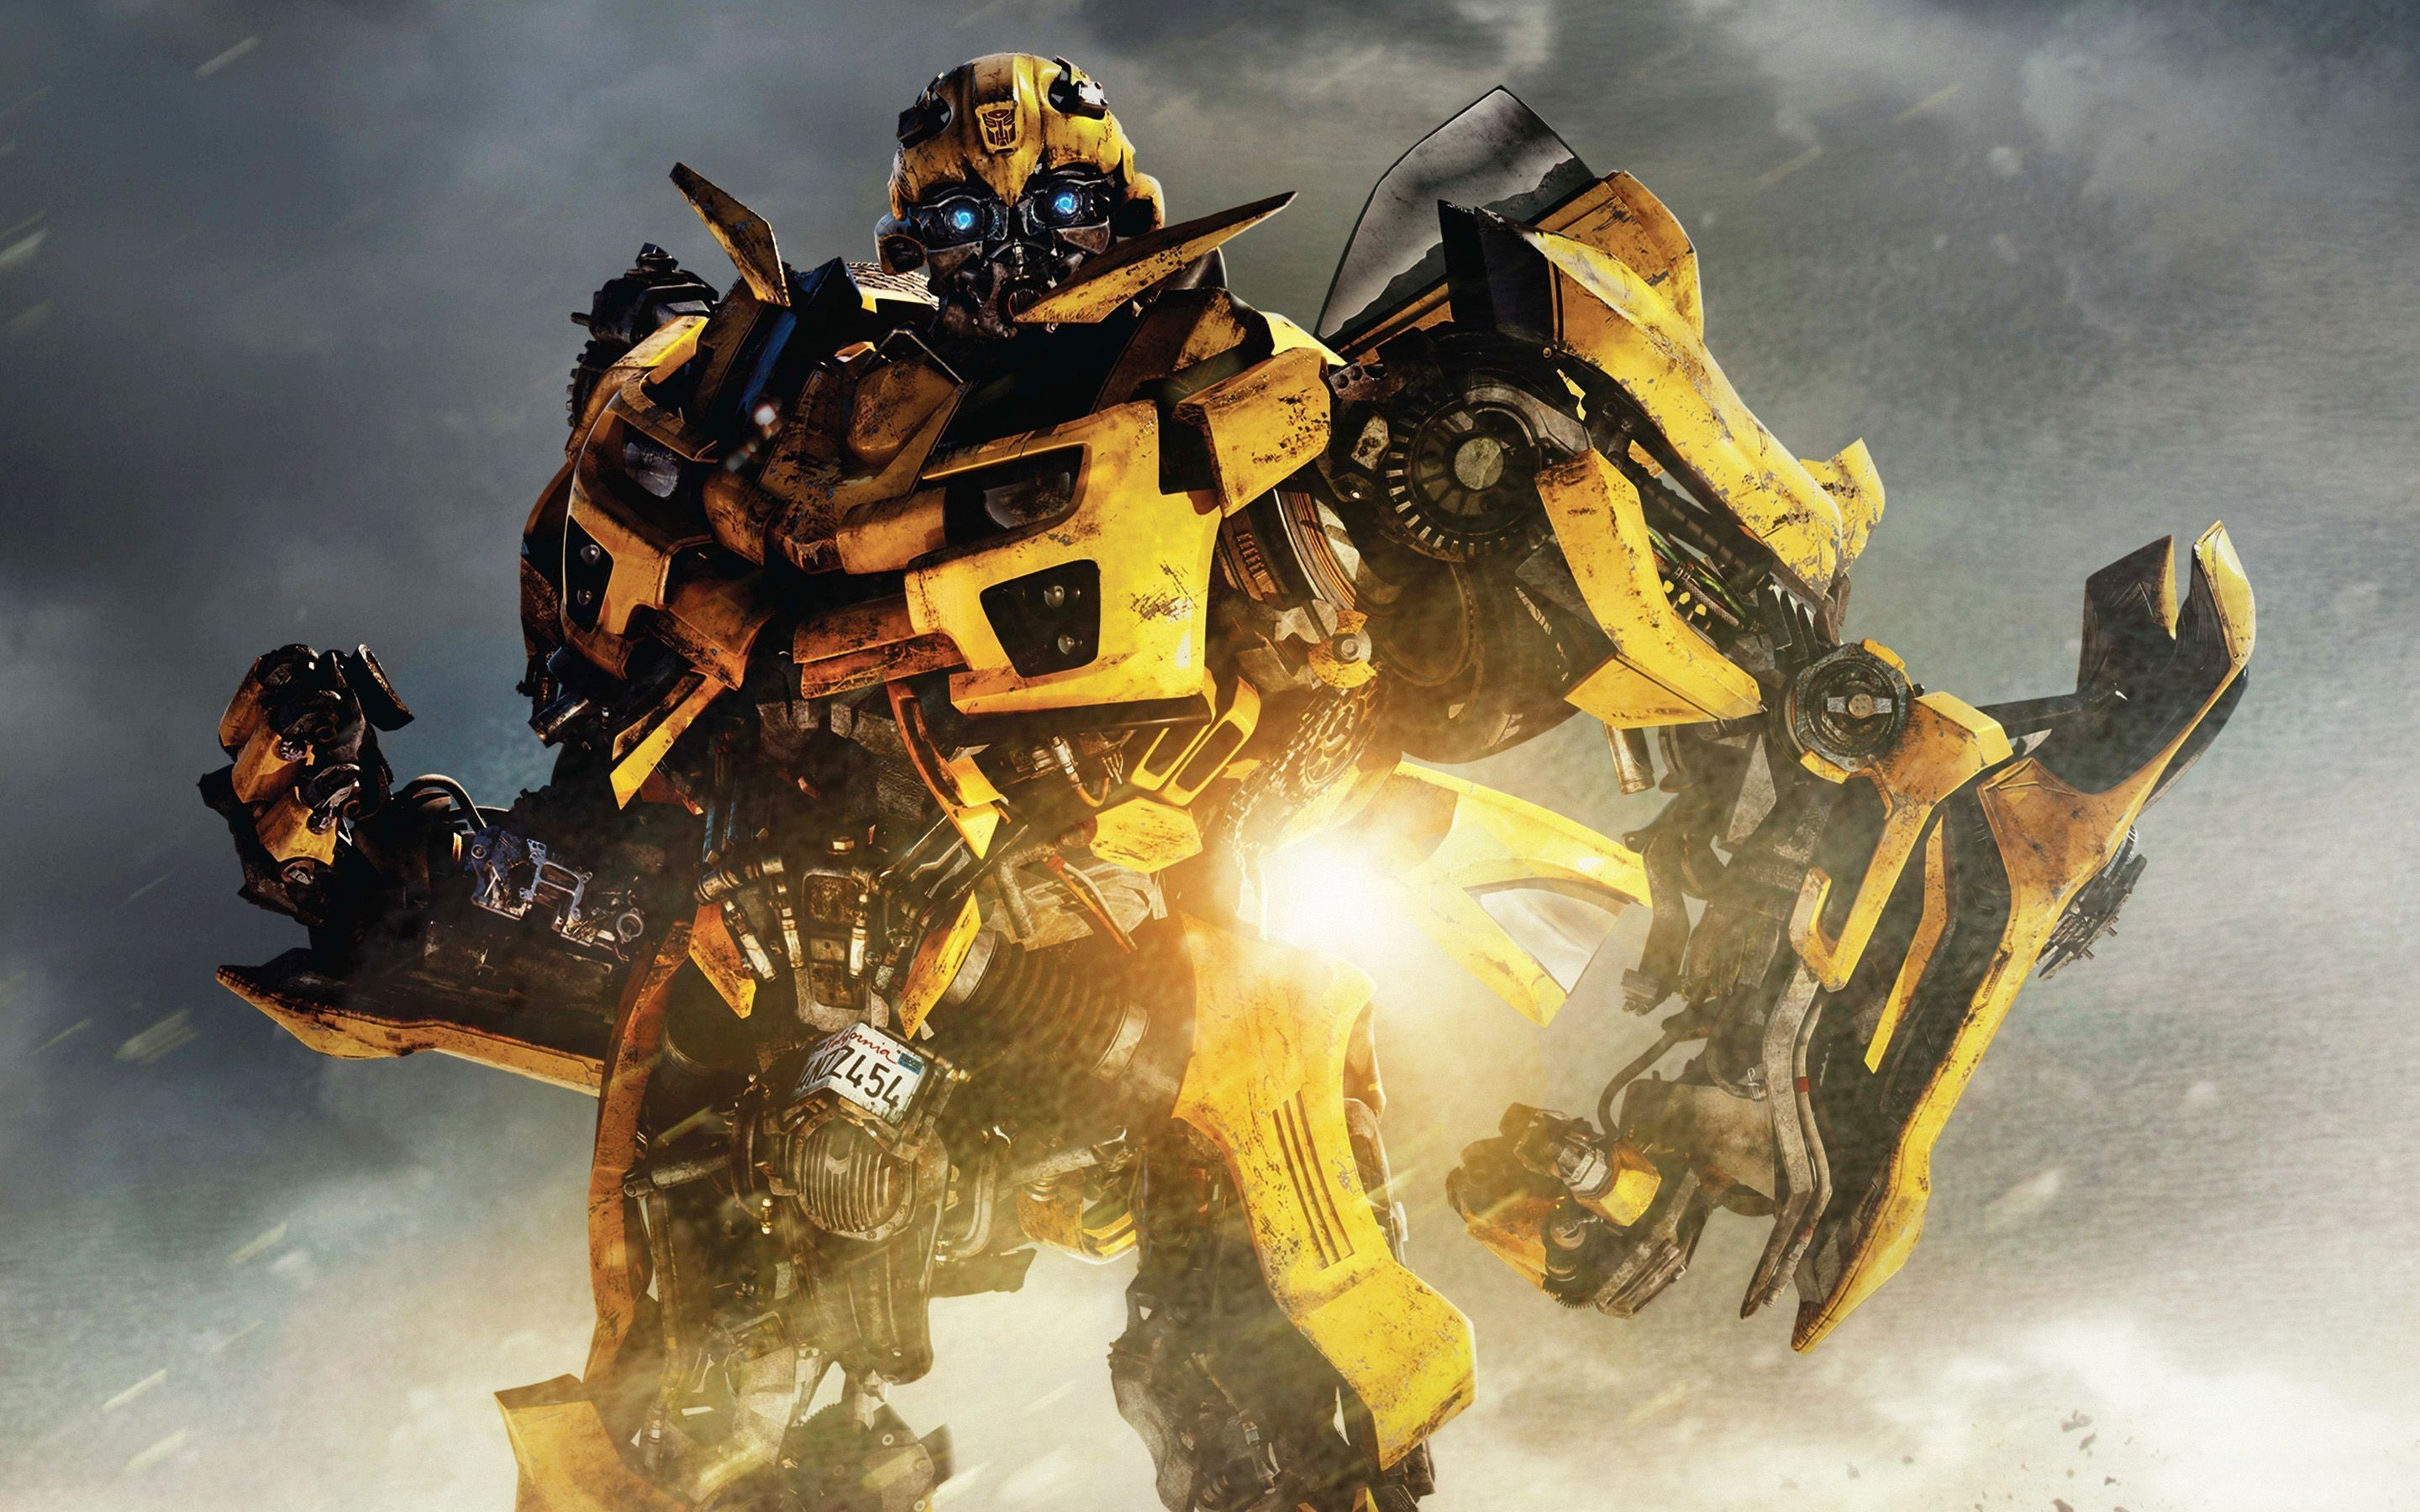 Bumblebee 2018 wallpaper hd wallpapertag - Images of bumblebee from transformers ...